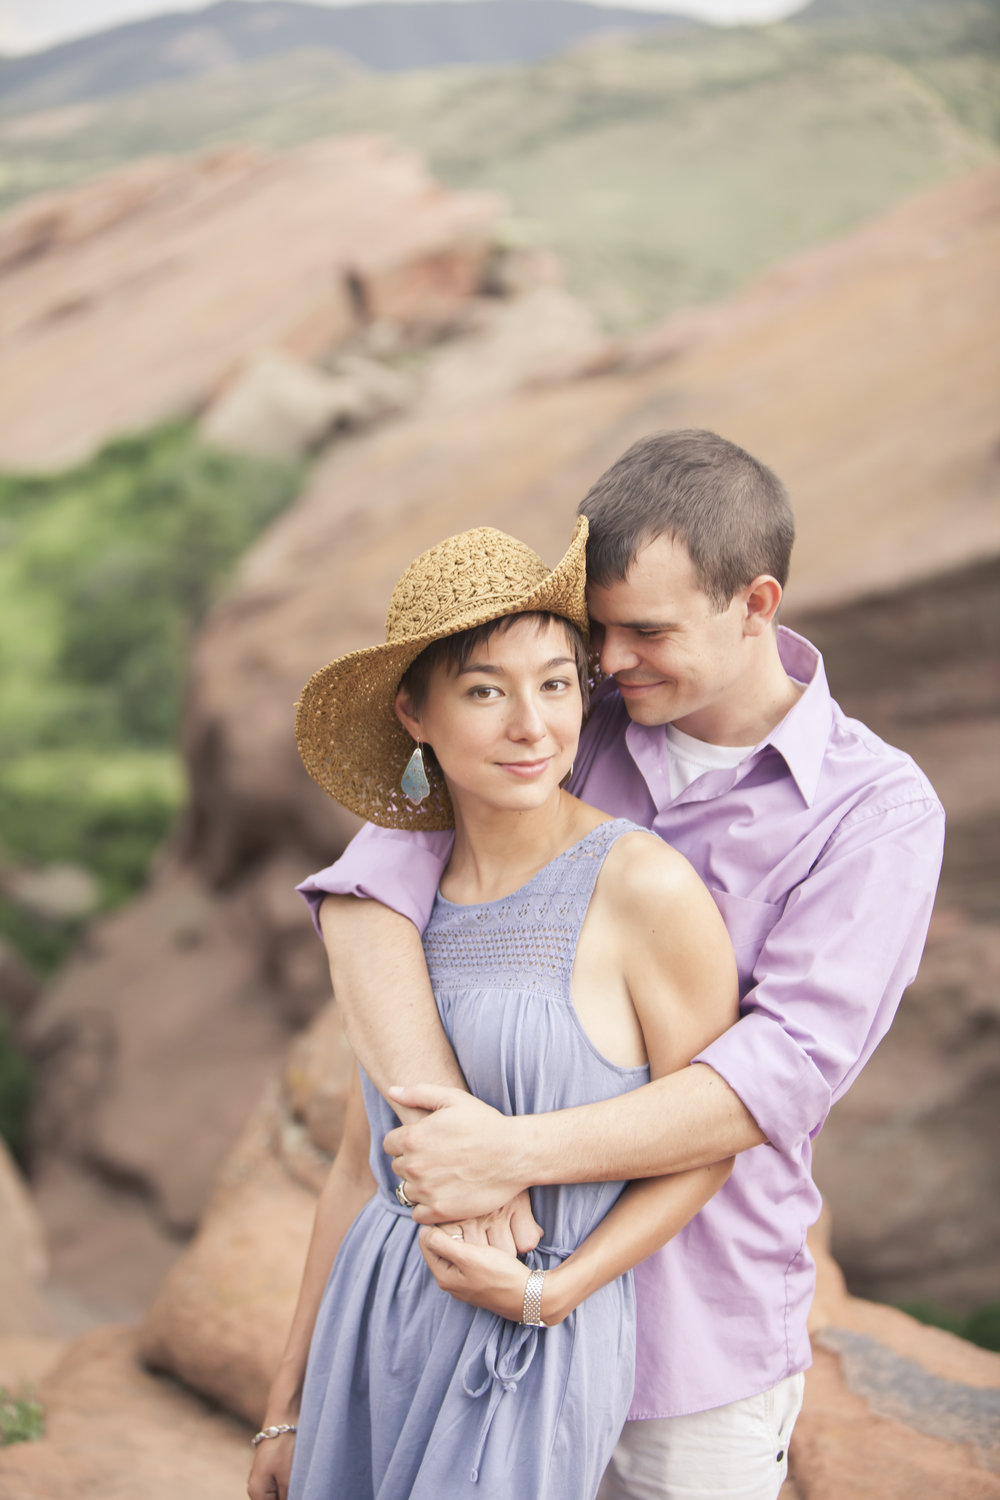 kmulhern_photography_david_and_martha_engagement_session_2013_098.jpg